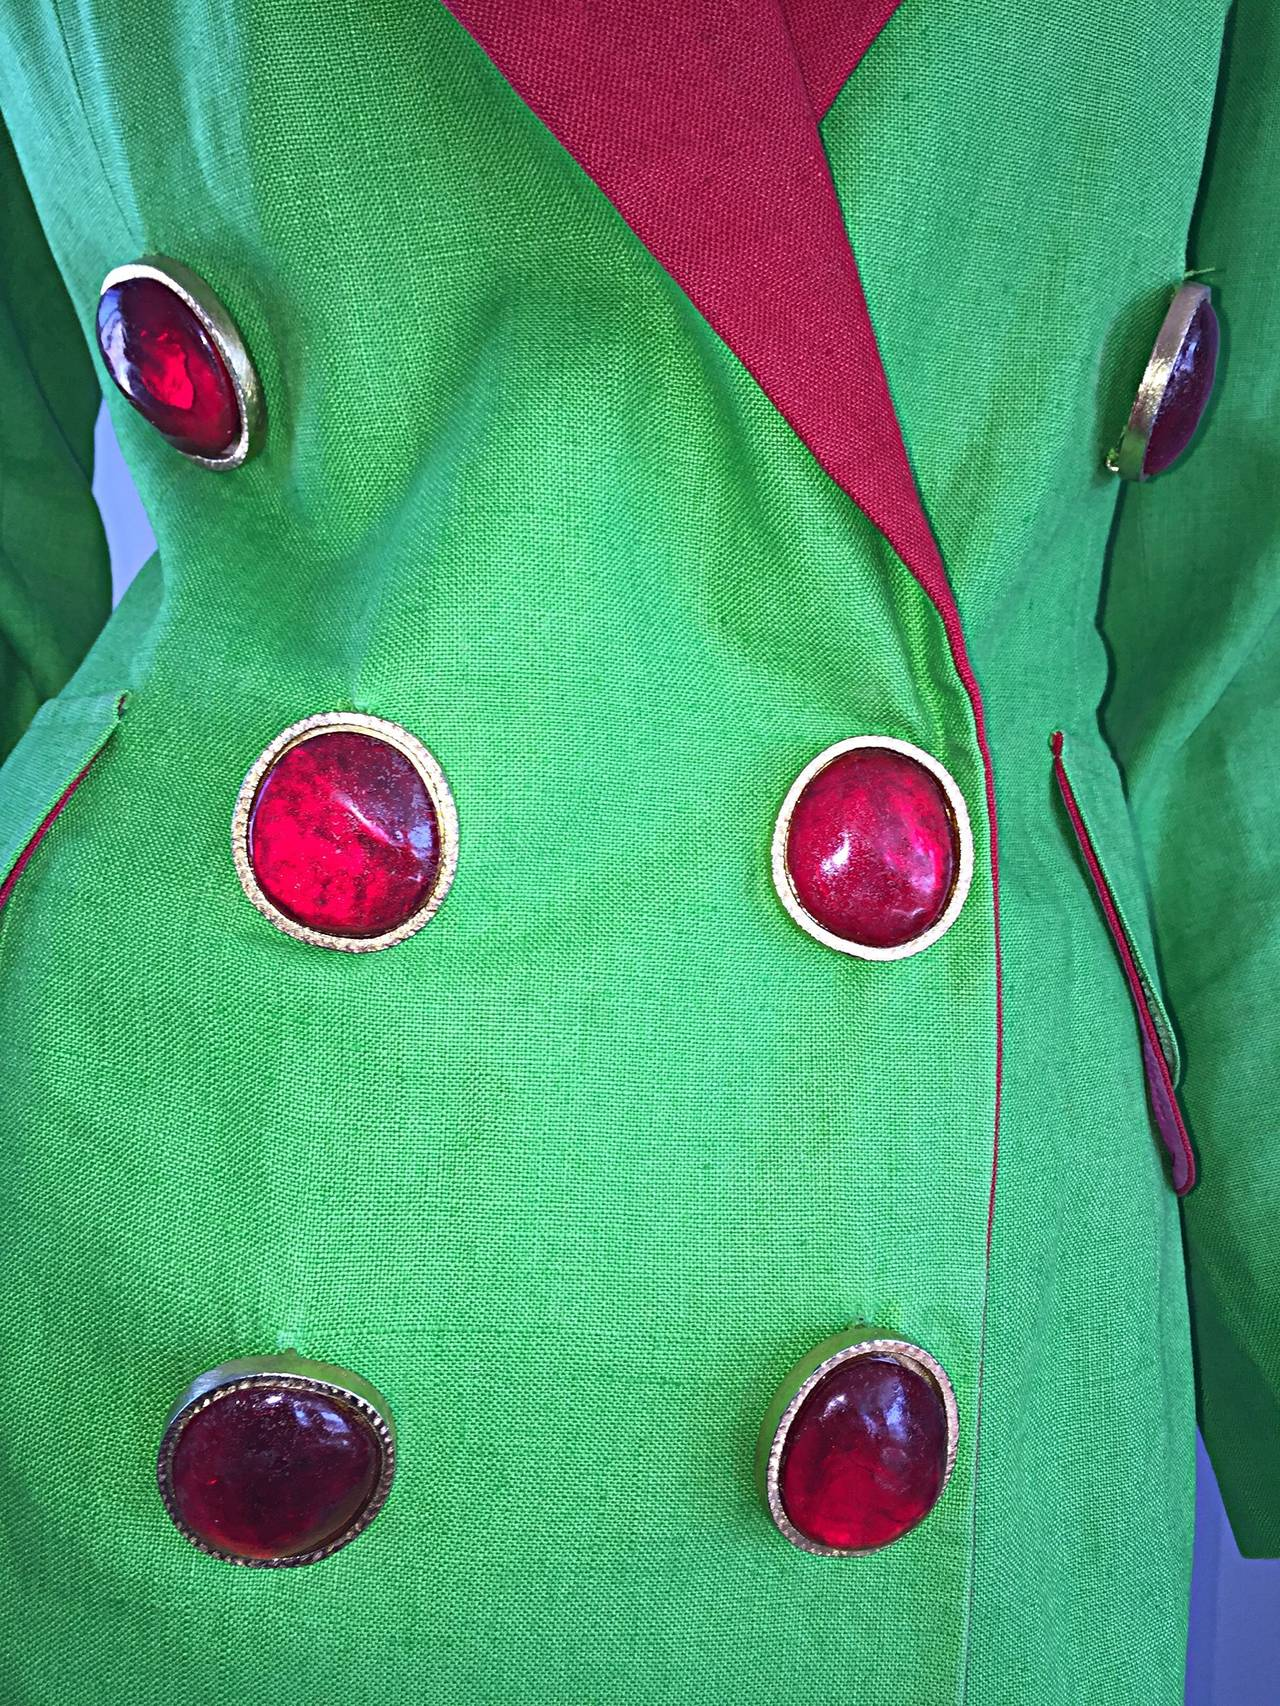 Incredible Vintage Gemma Kahng Green + Red Blazer w/ Gripoix Buttons In Excellent Condition For Sale In Chicago, IL